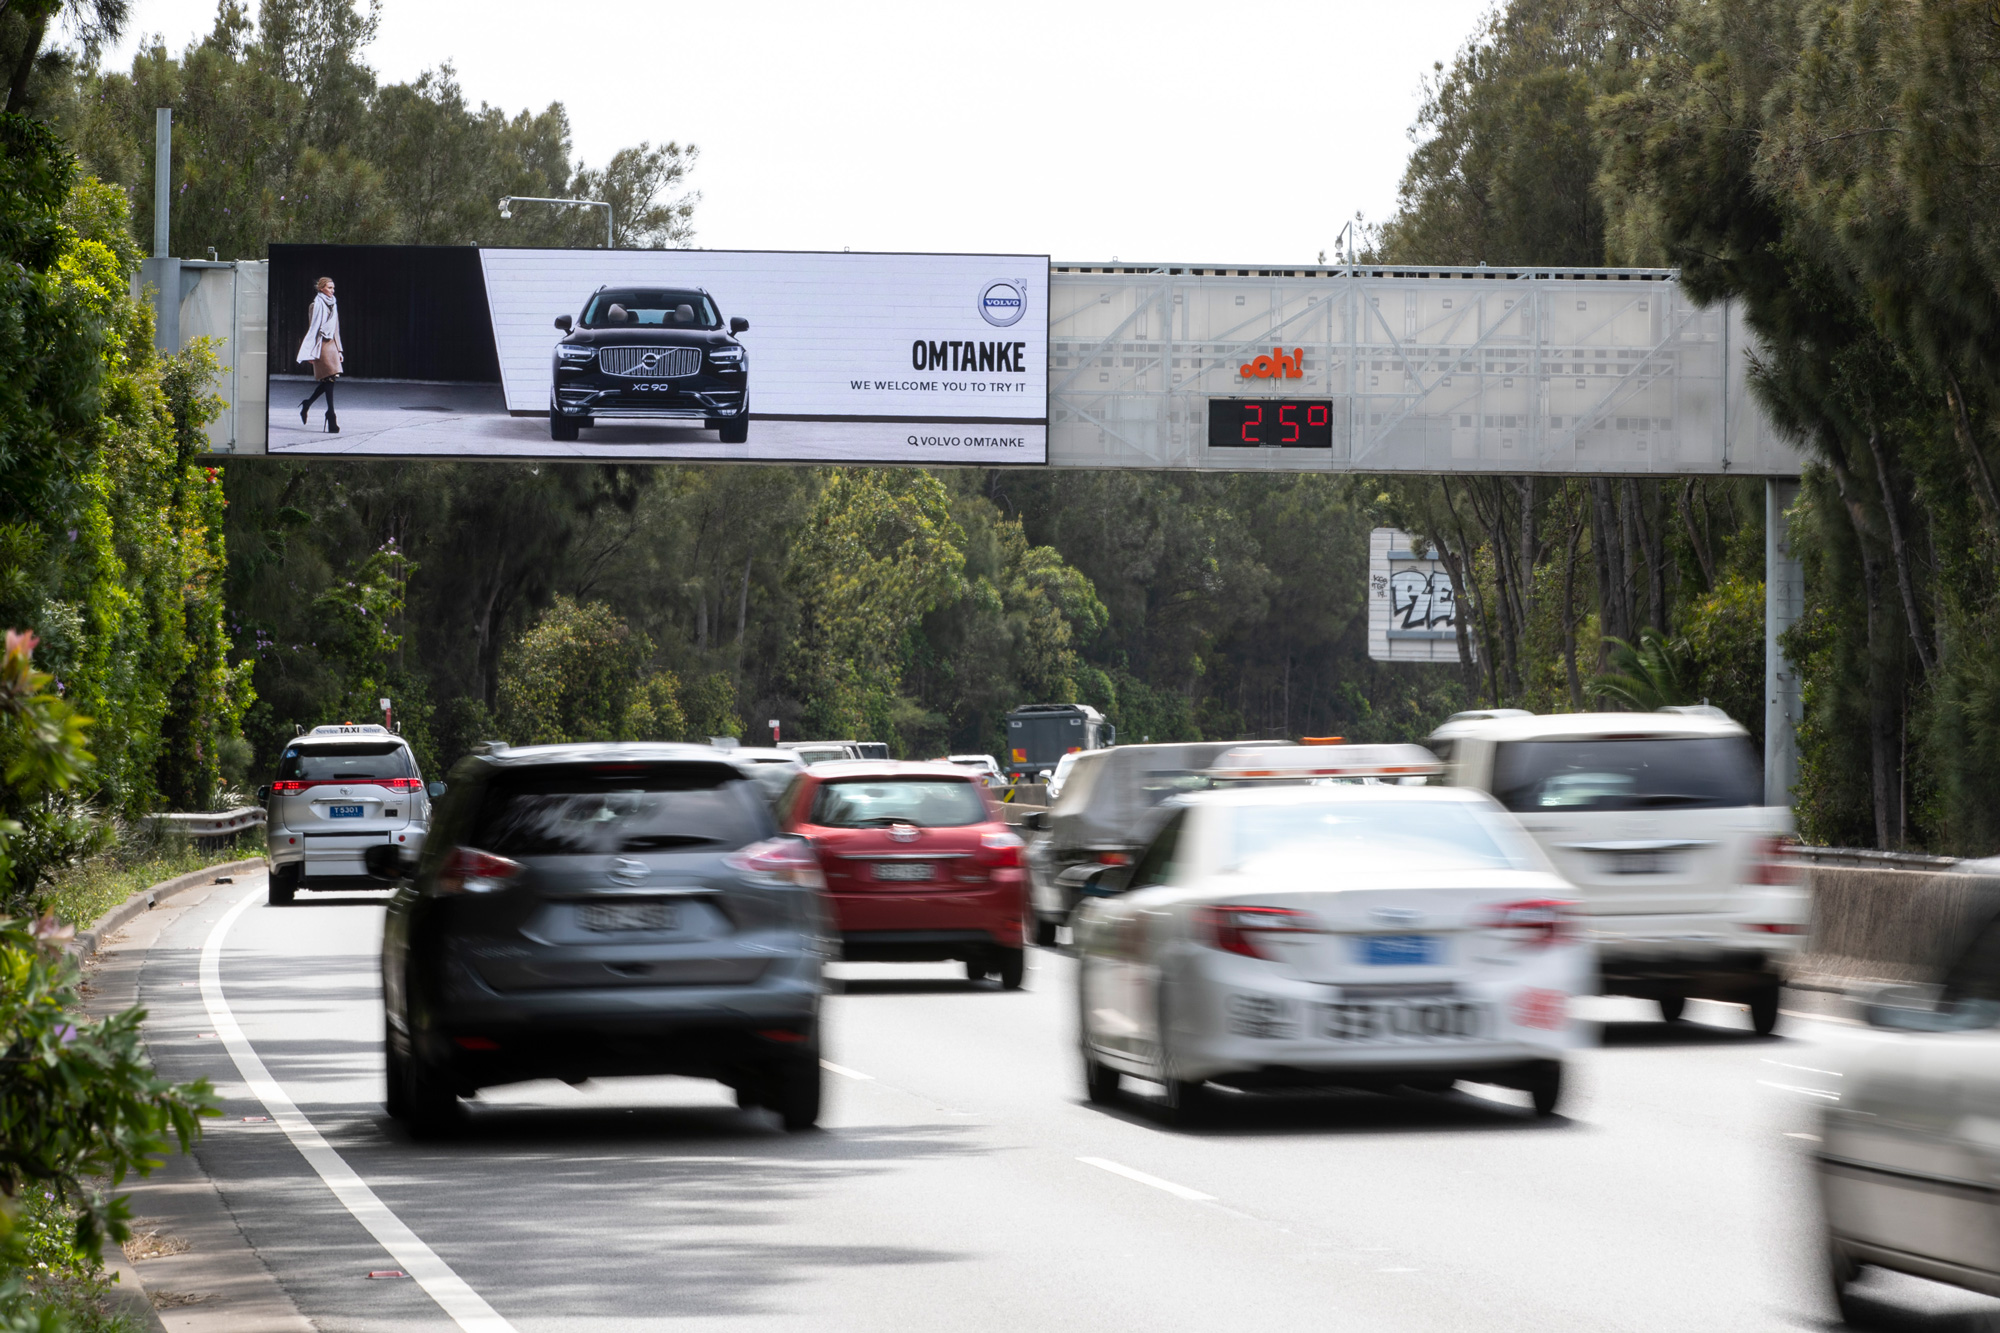 Volvo billboard advertising on road